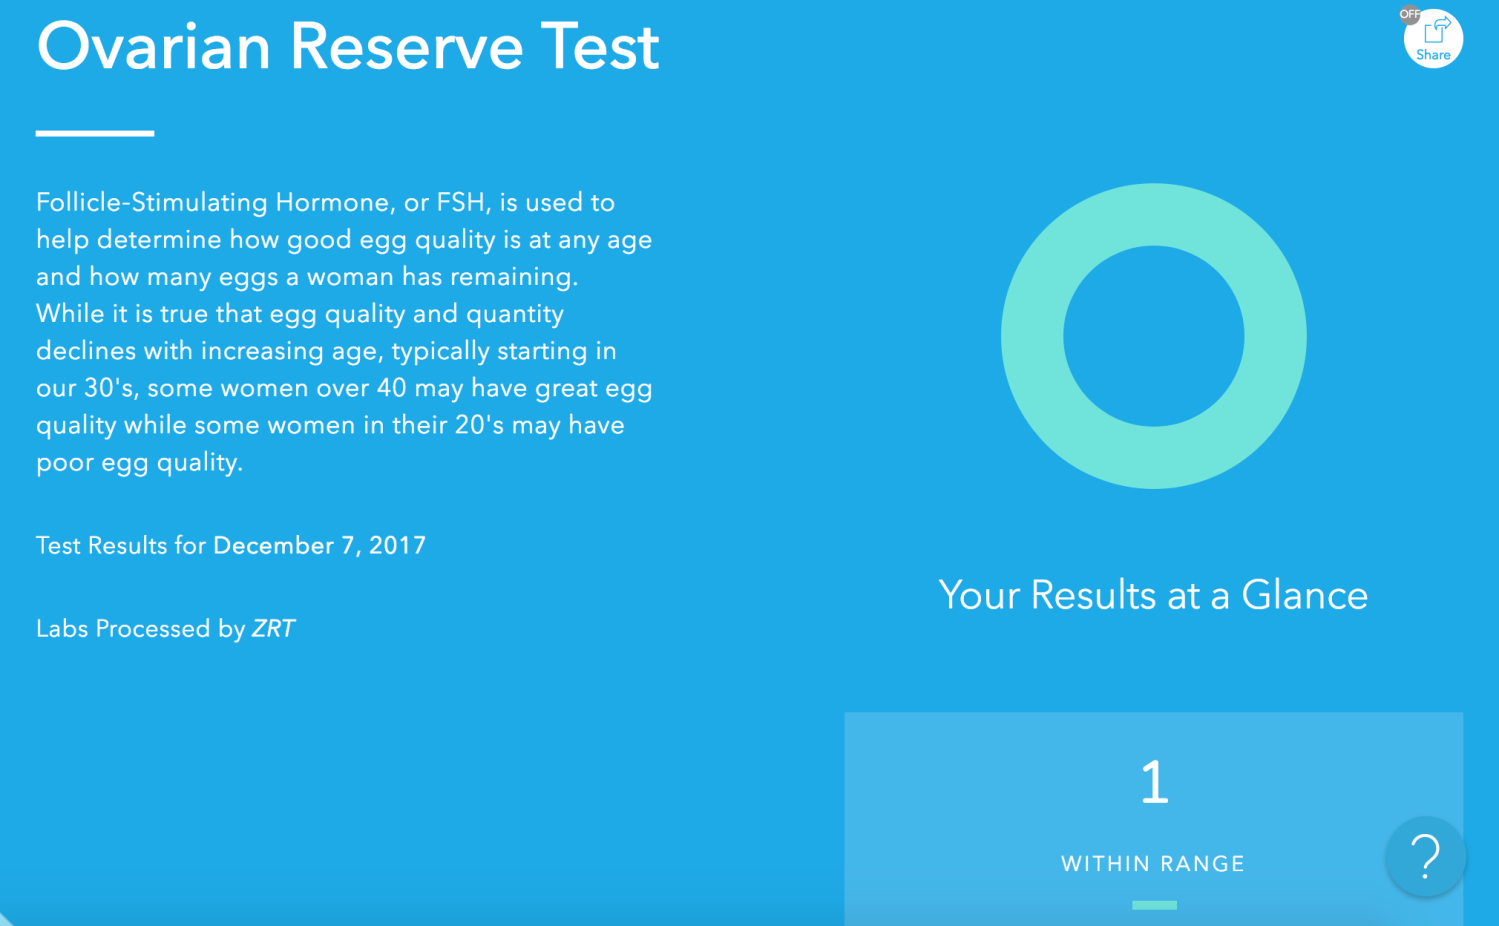 I tried EverlyWell's ovarian reserve test  This is what I